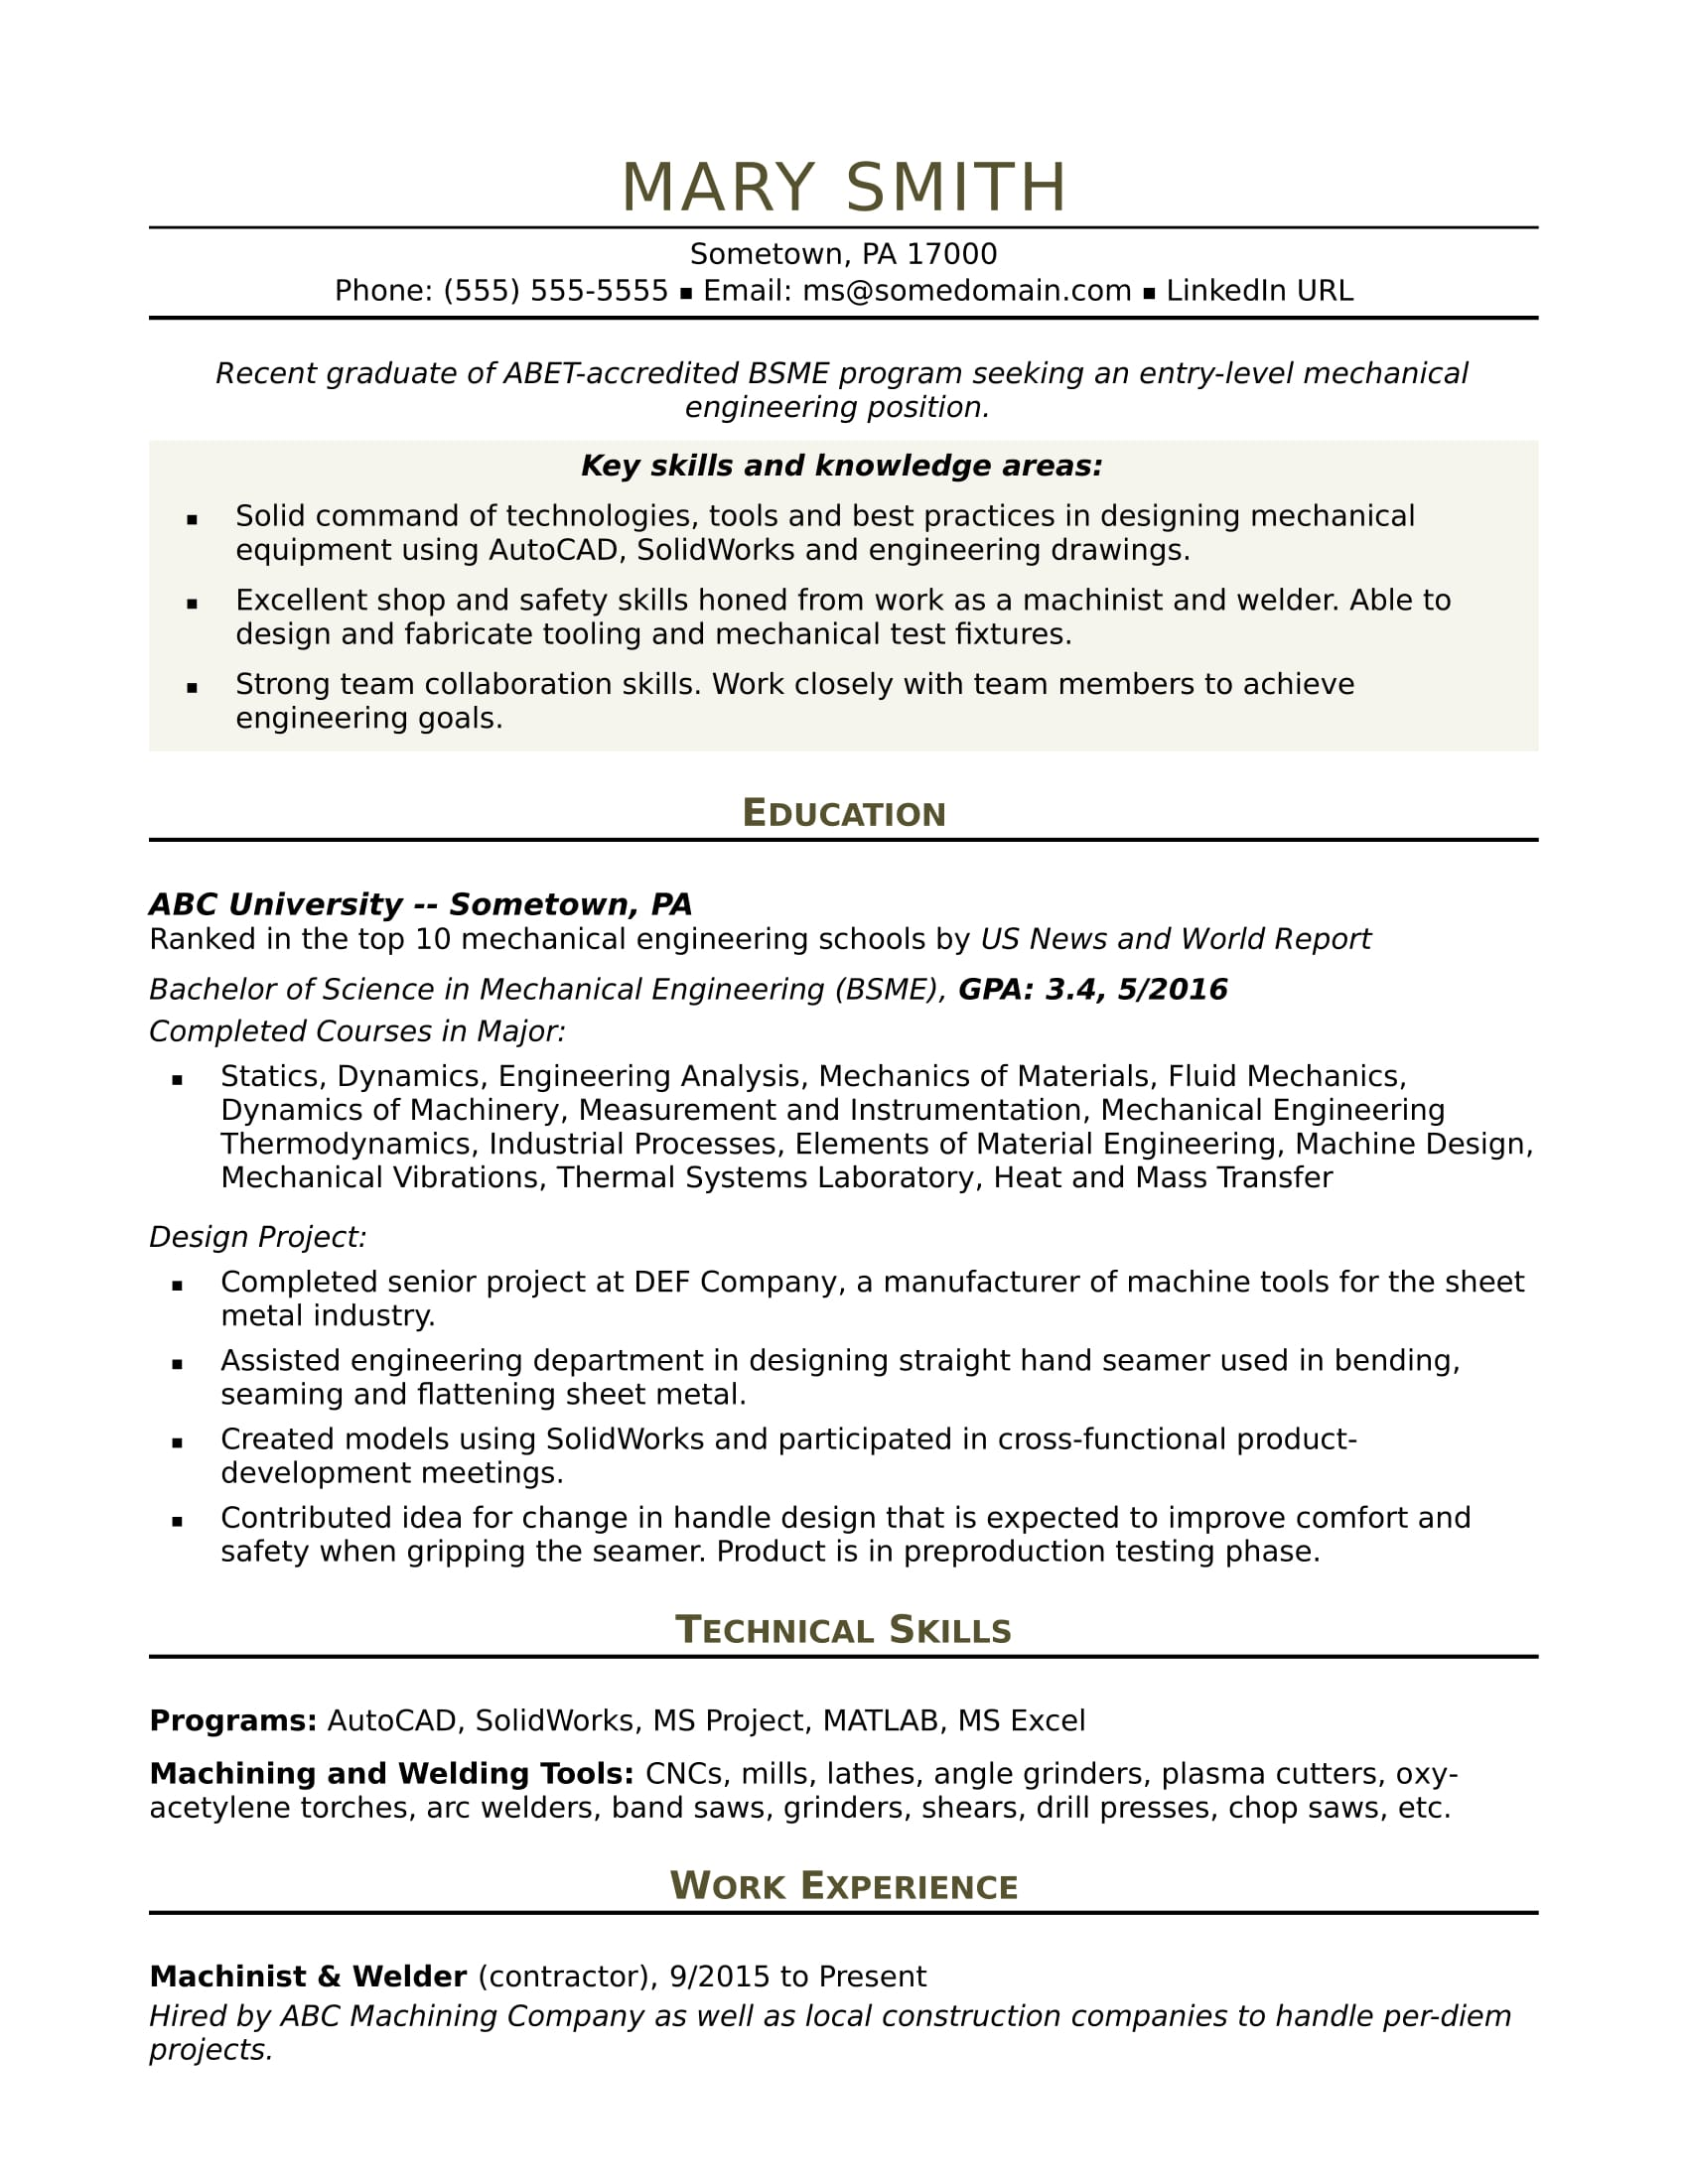 Computer Security Resume Objective Examples Sample Graduate Teacher